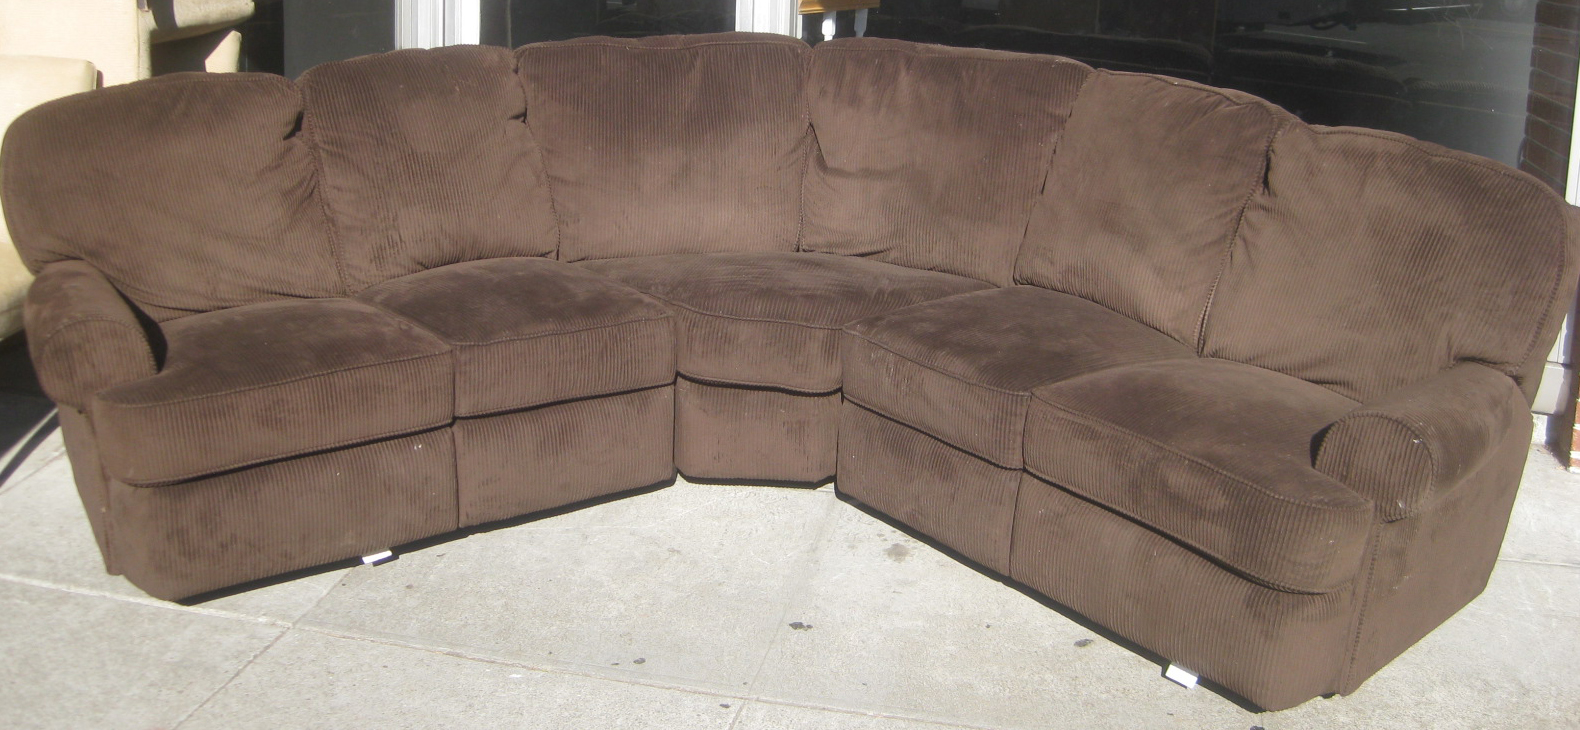 Uhuru Furniture Amp Collectibles Sold Corduroy Sectional